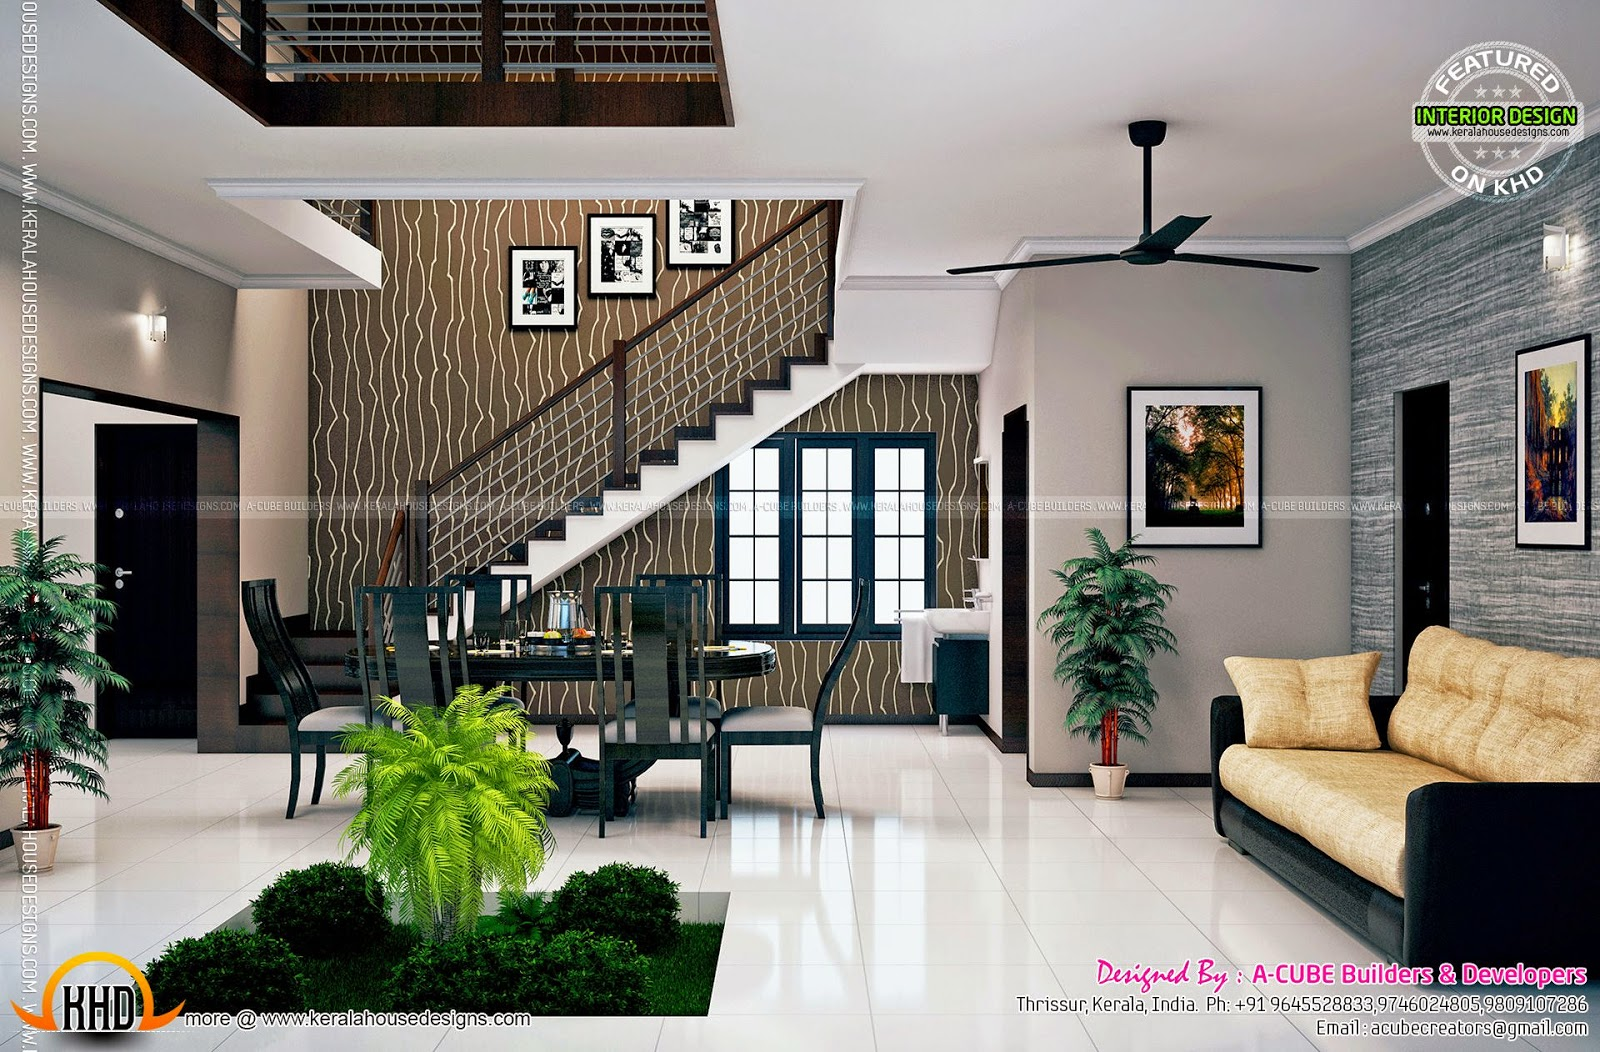 Kerala interior design ideas kerala home design and for Kerala house living room interior design